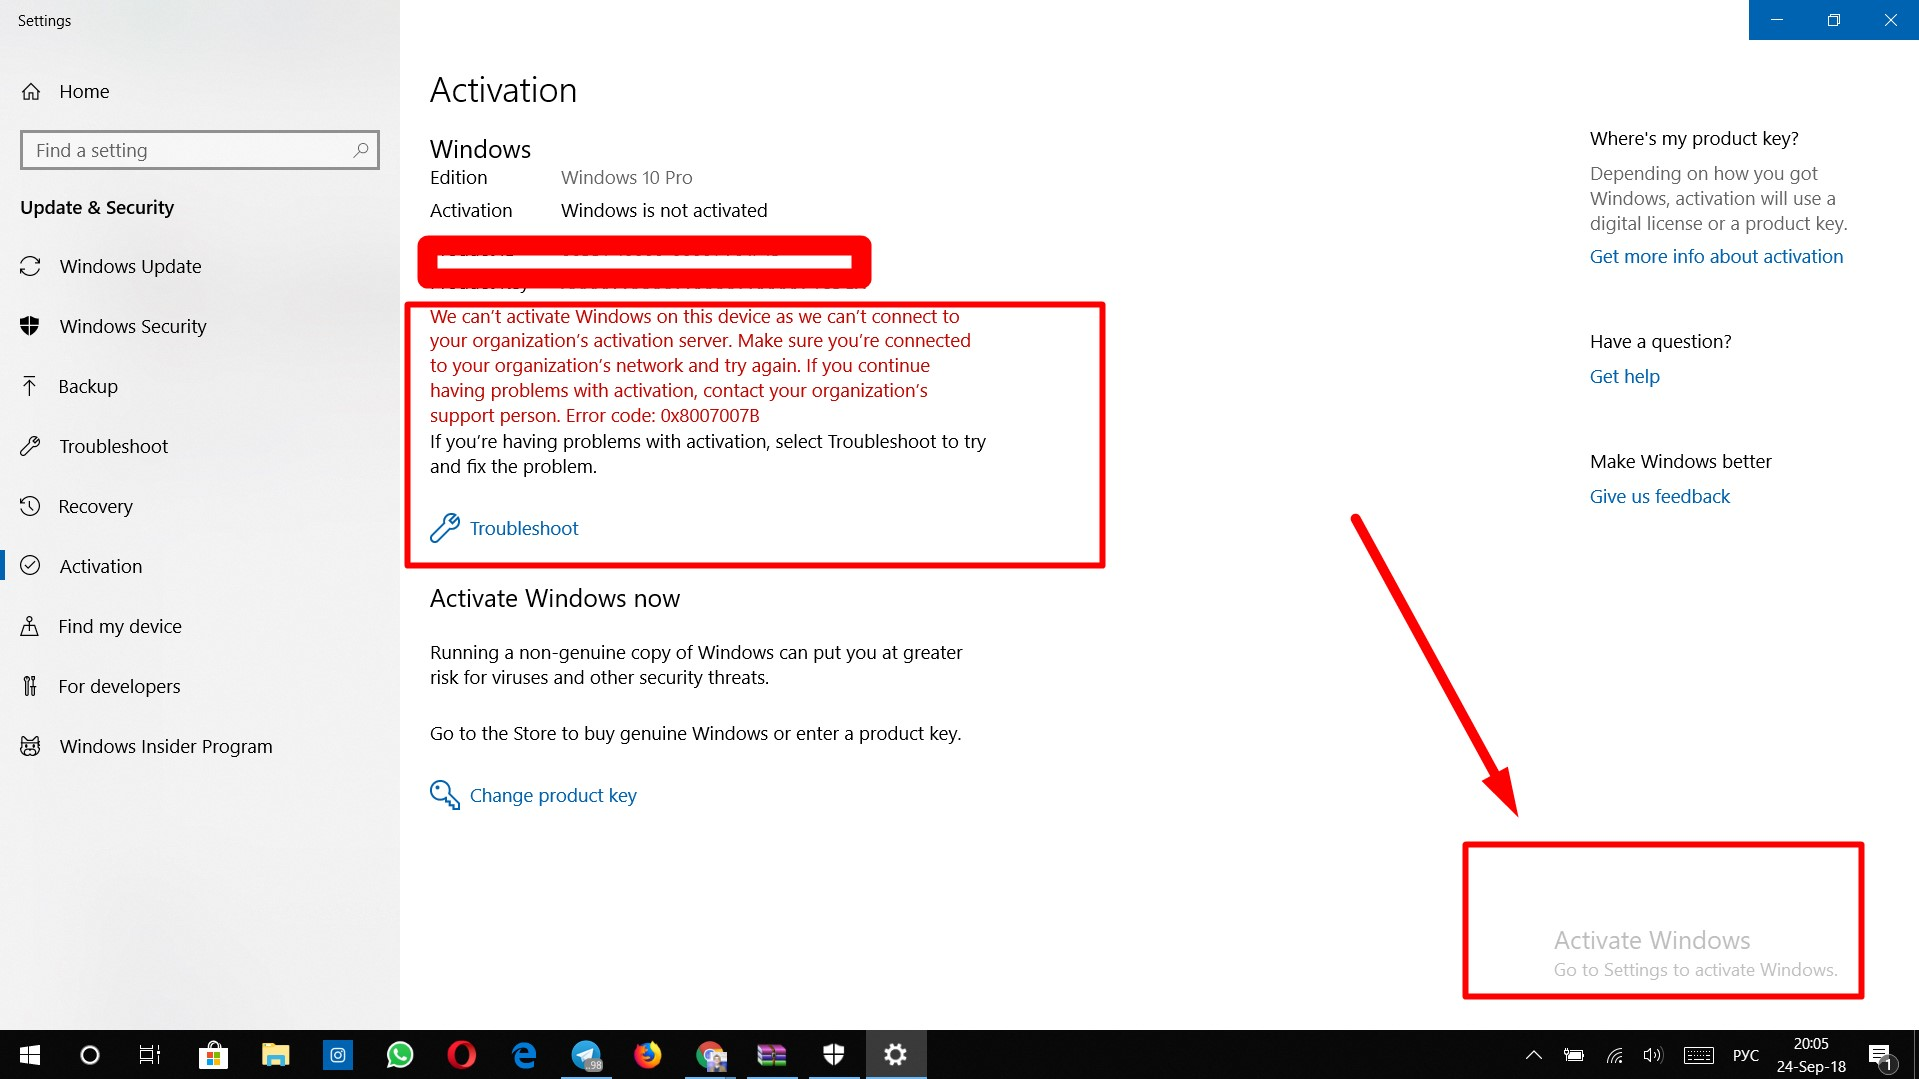 Windows 10 activation problem 0x8007007B  How to fix it? What